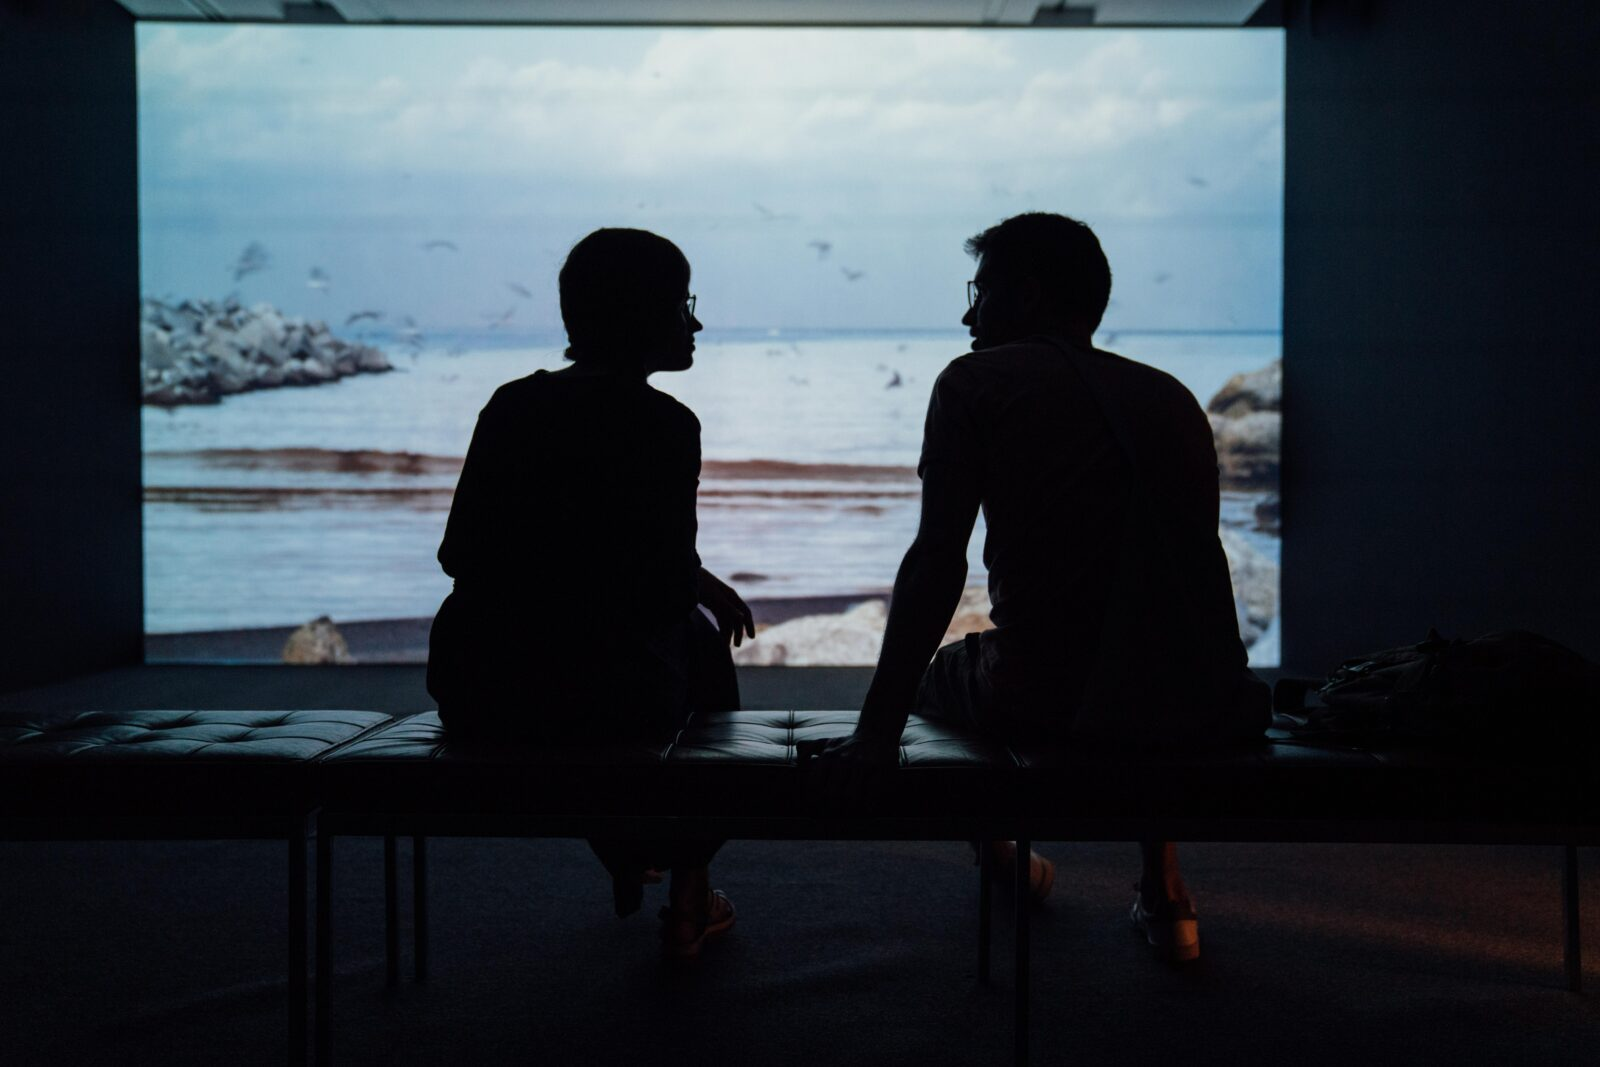 The silhouette of two people sitting and talking together, showing the importance of trying to learn from those around you